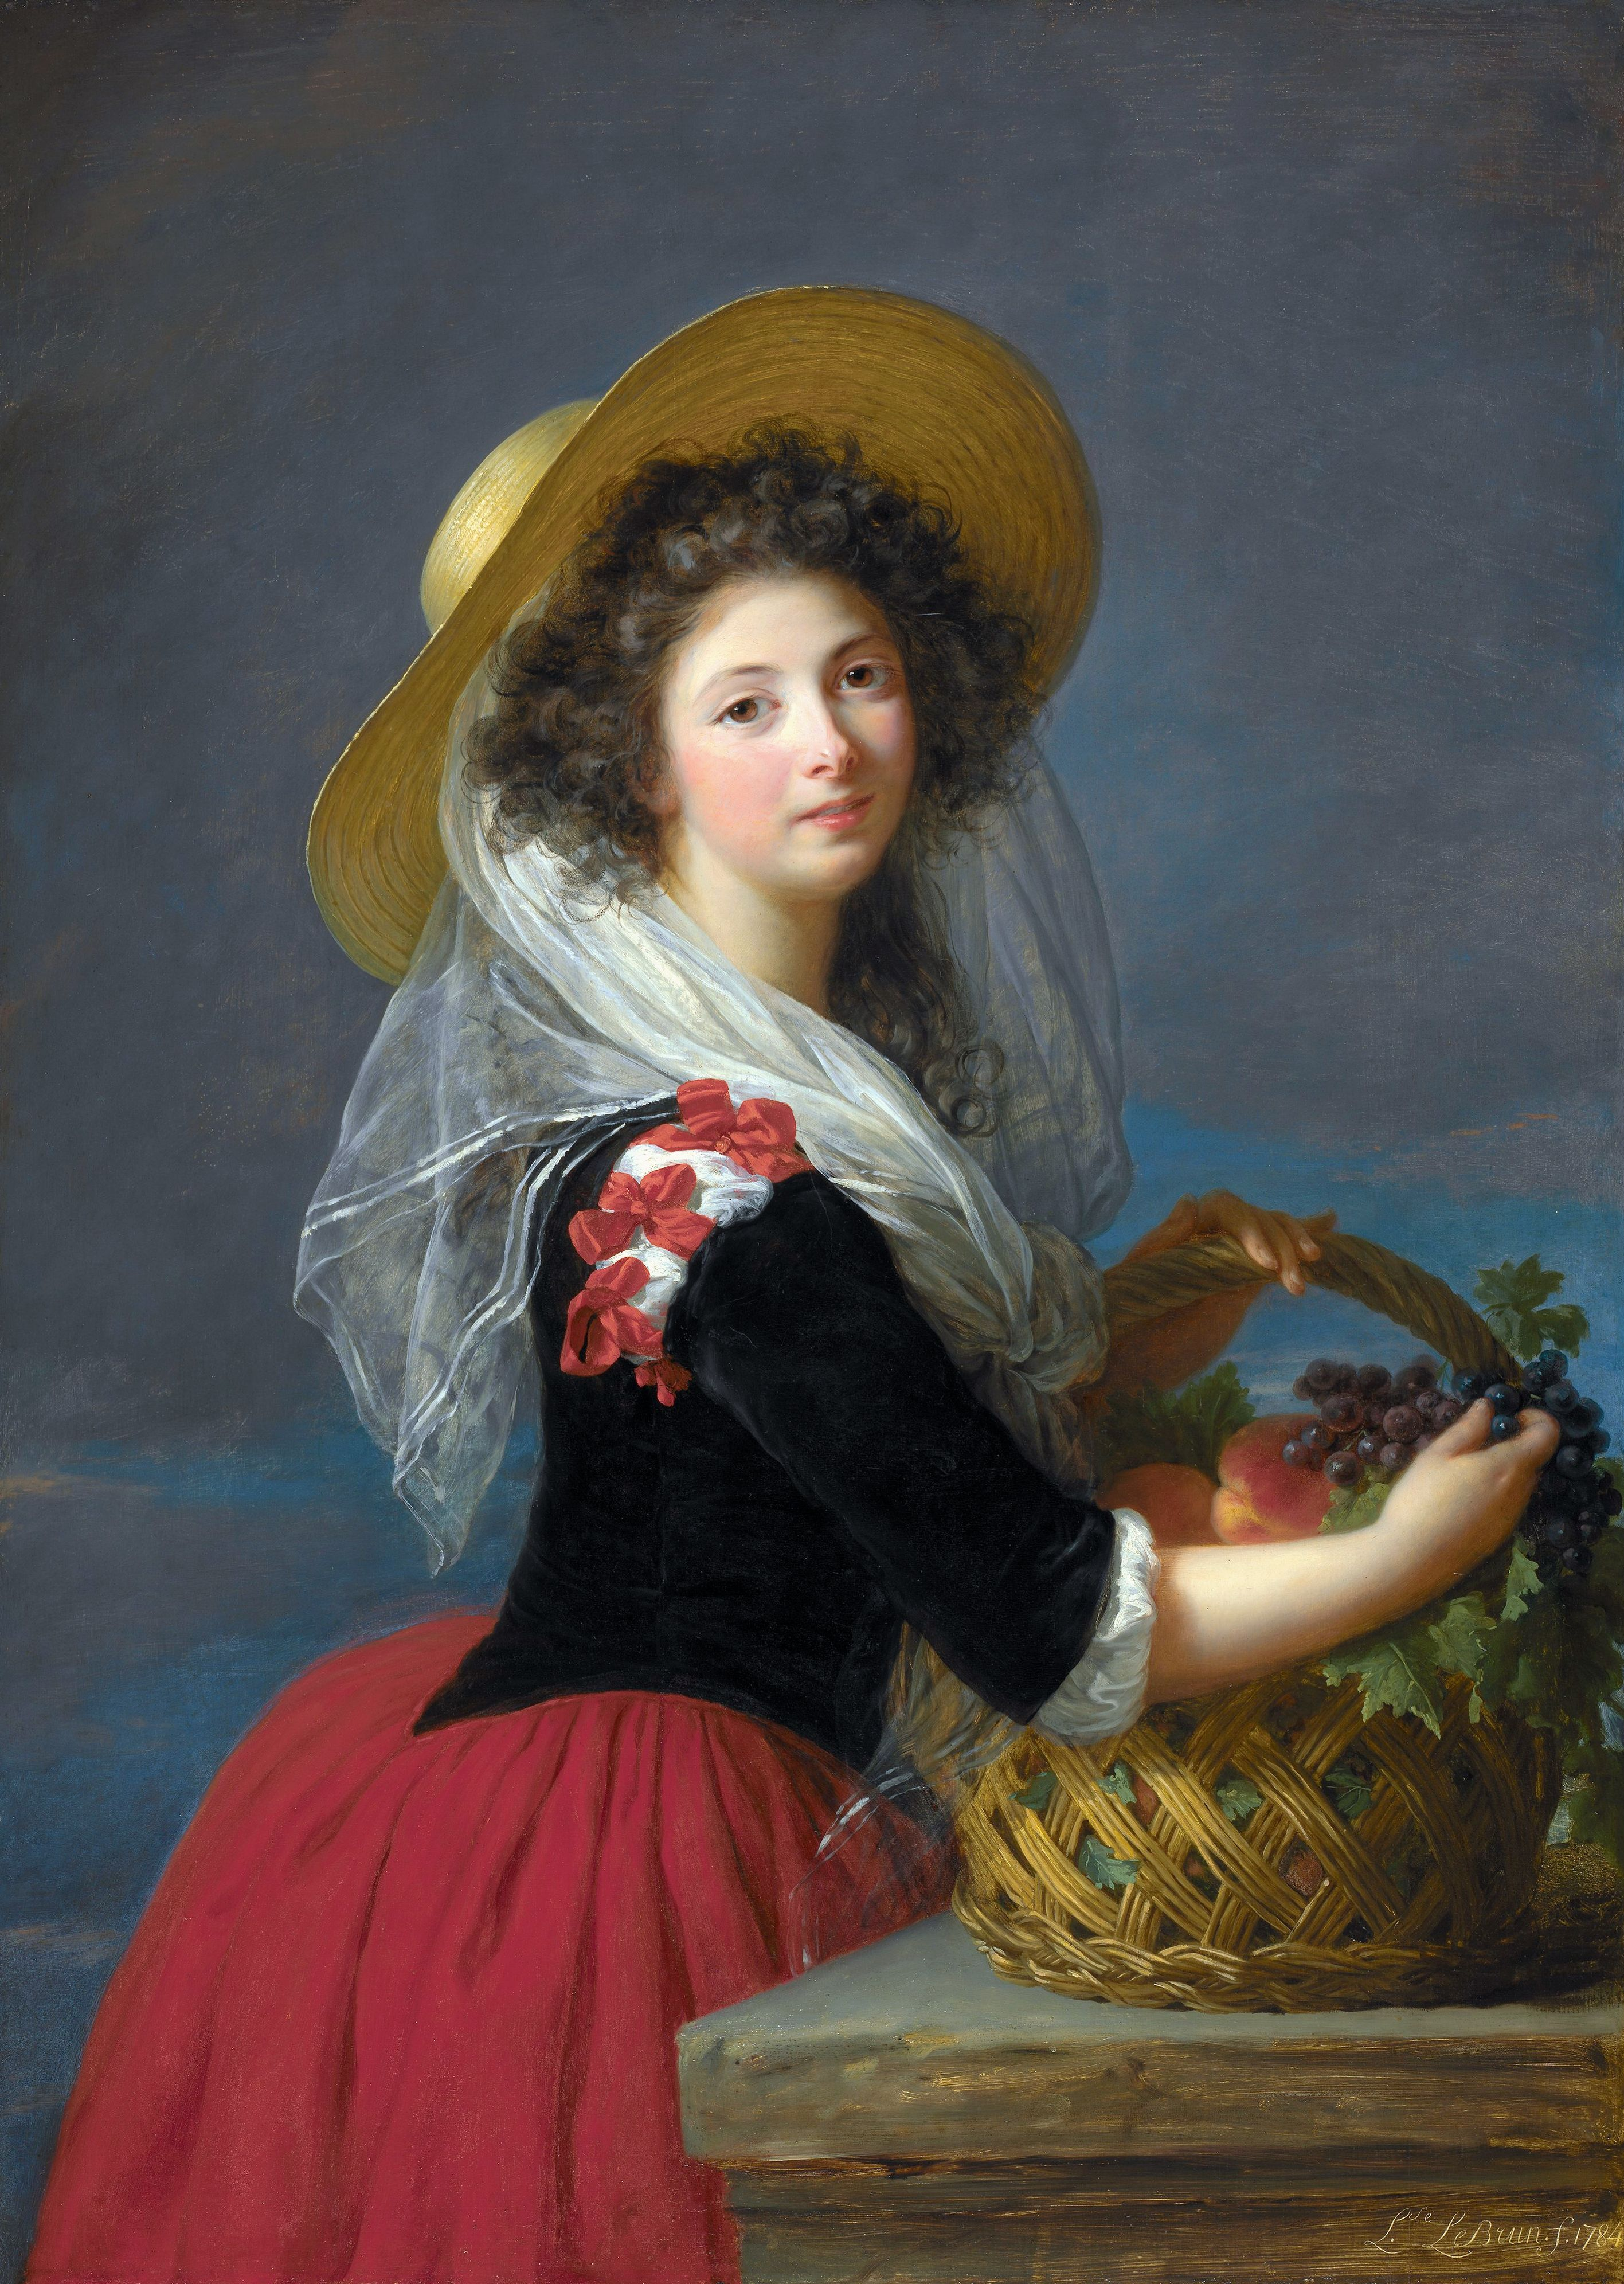 Top 25 Oil Paintings and Famous Portraits from 18th century  7d55dde2dd6f